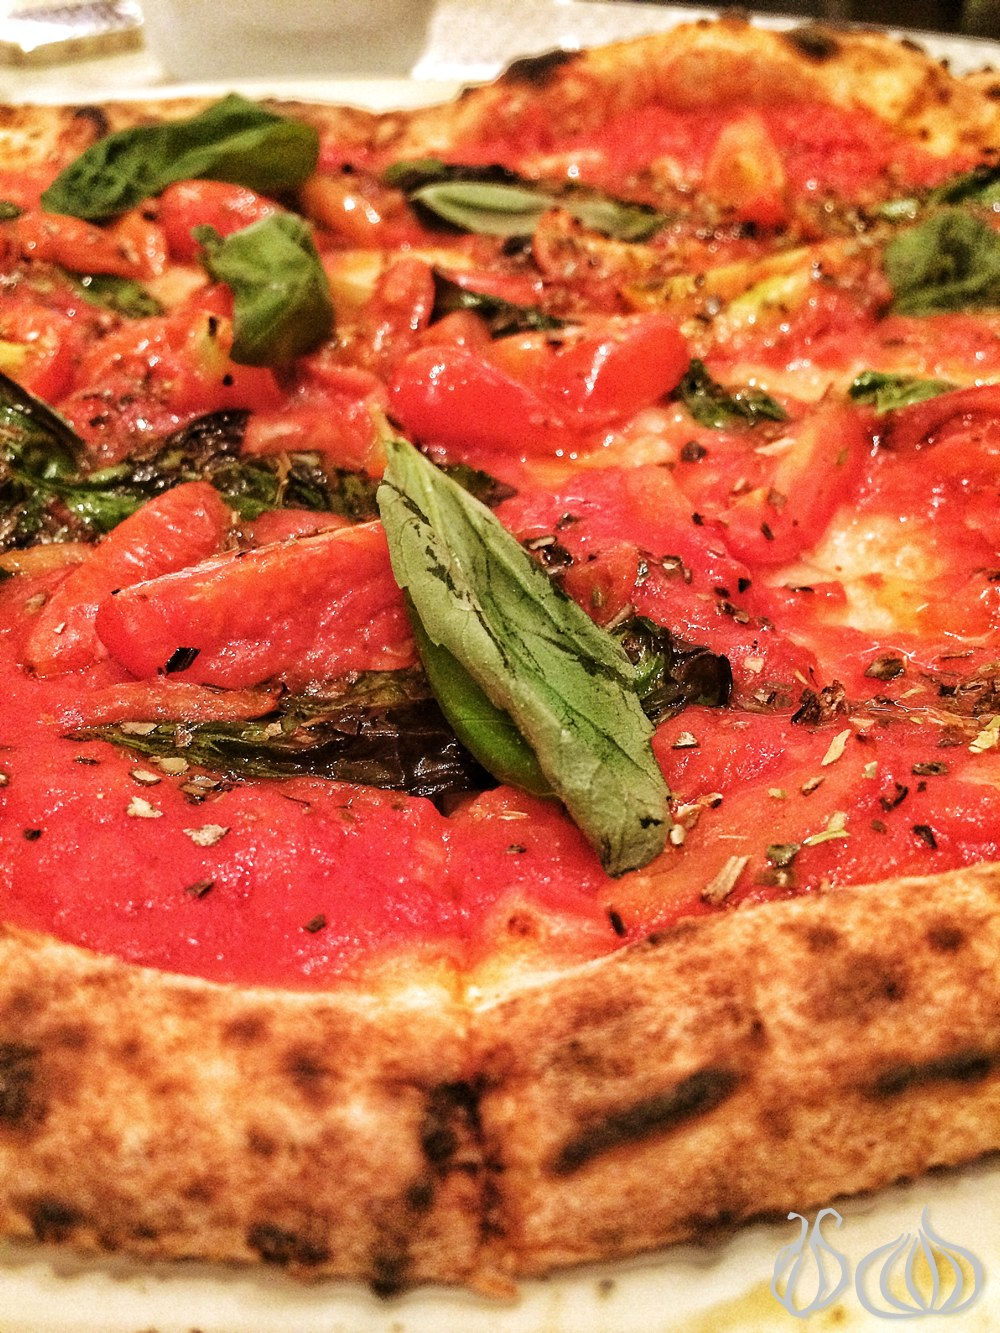 pzza-co-italian-pizza-restaurant-beirut-review322014-09-16-10-08-16